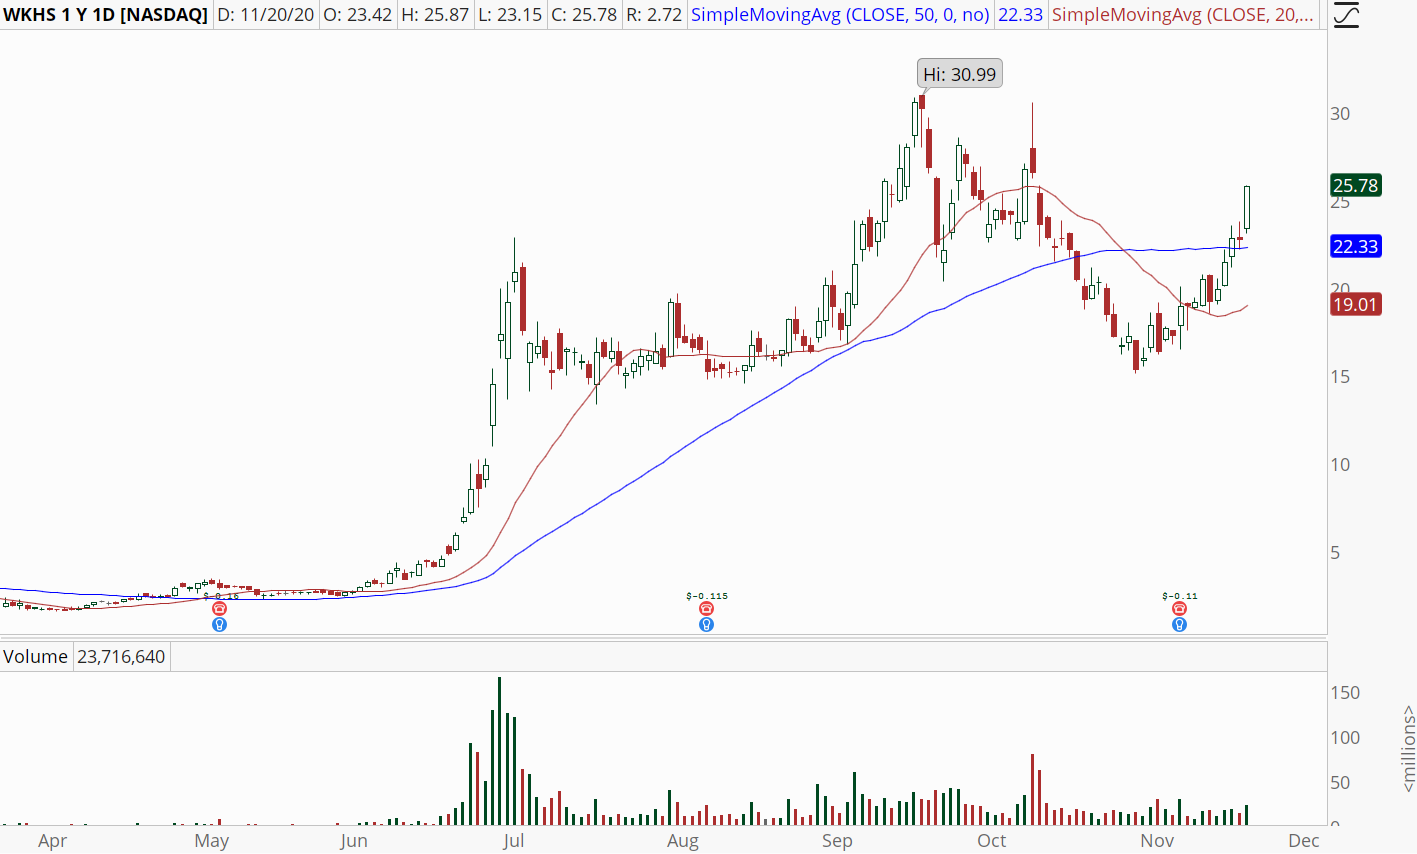 Workhorse (WKHS) stock chart showing break above 50-day moving average